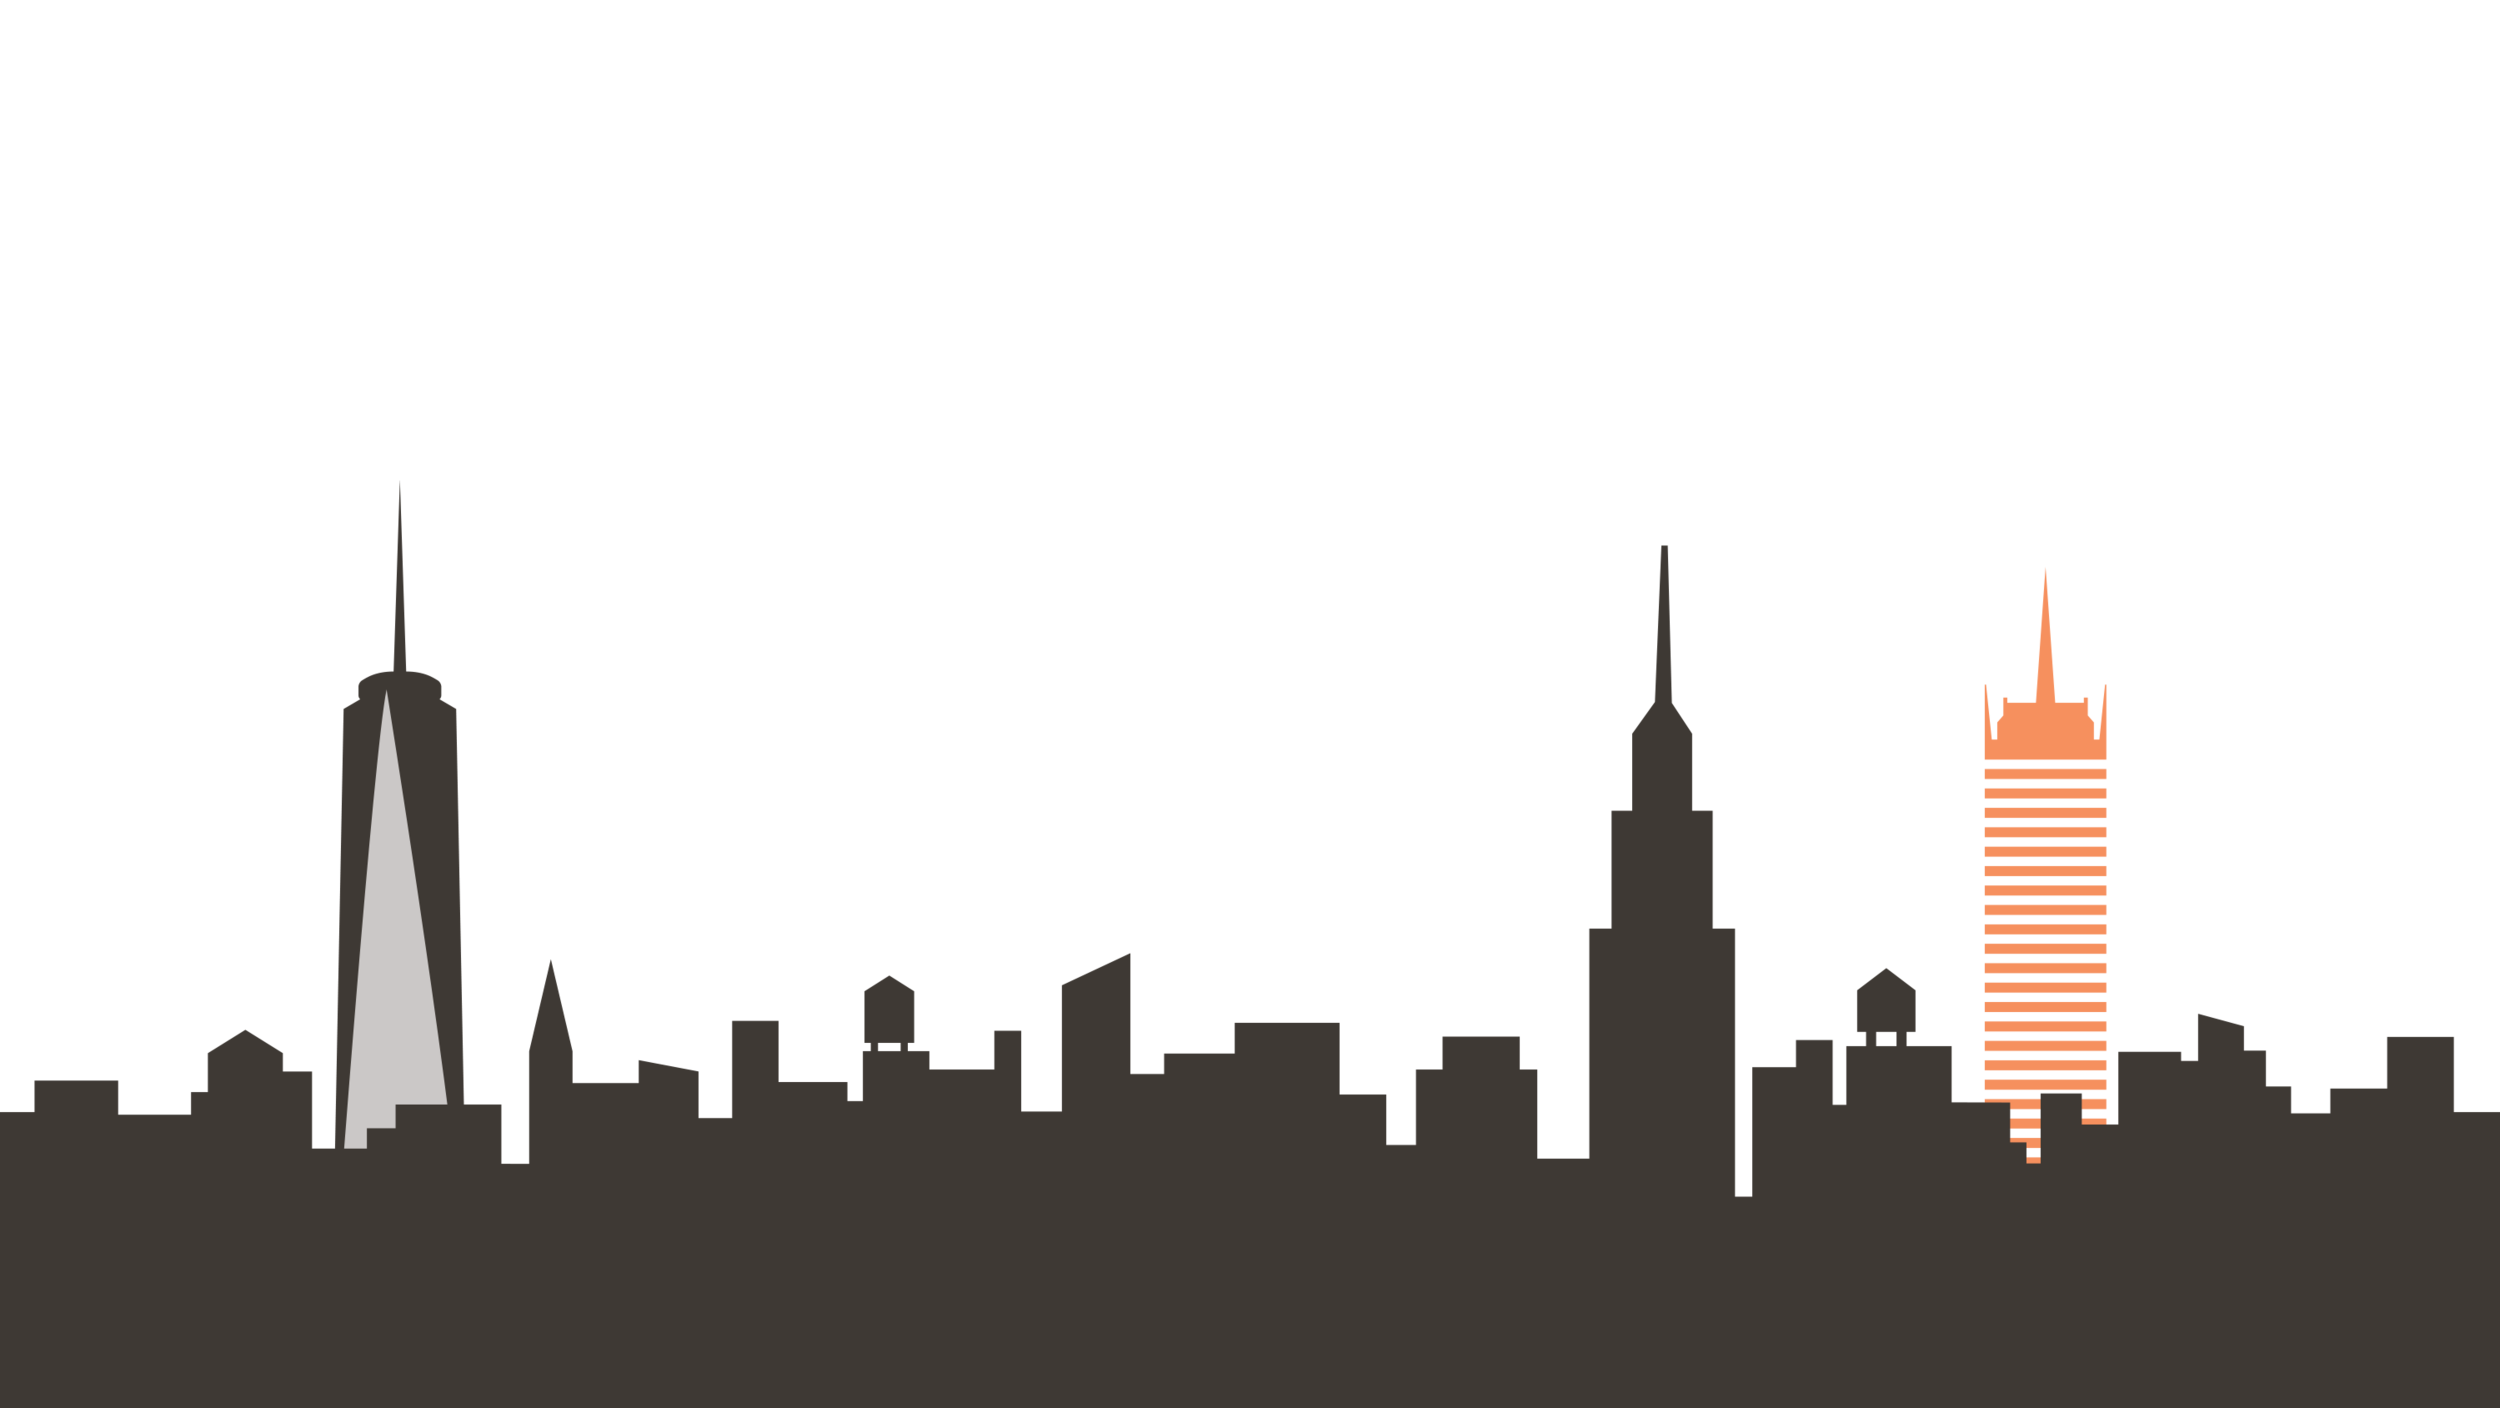 new-york-city-png-skyline-mobile-first-2013-november-5-2013-new-york-timescenter-2999.png